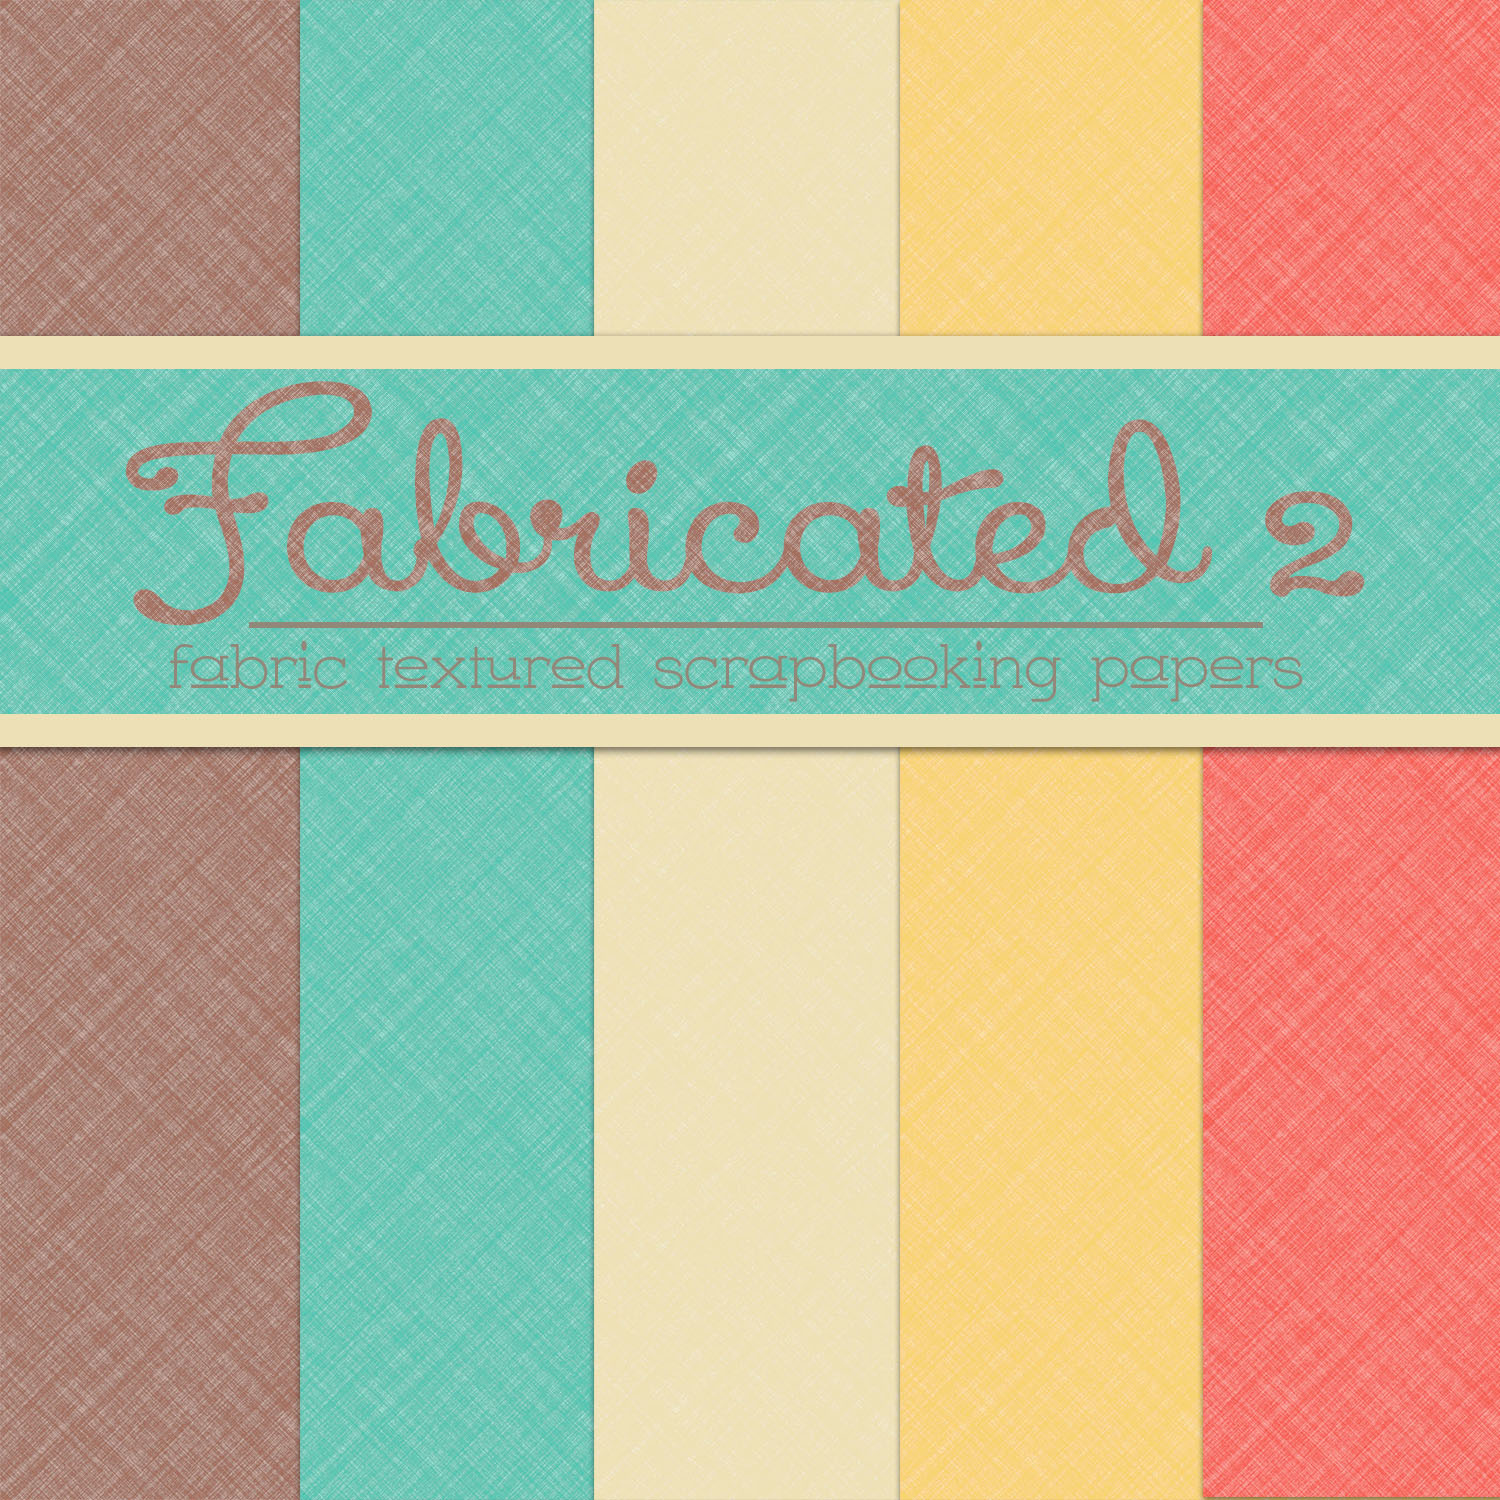 Free Fabricated 2: Fabric Textured Papers